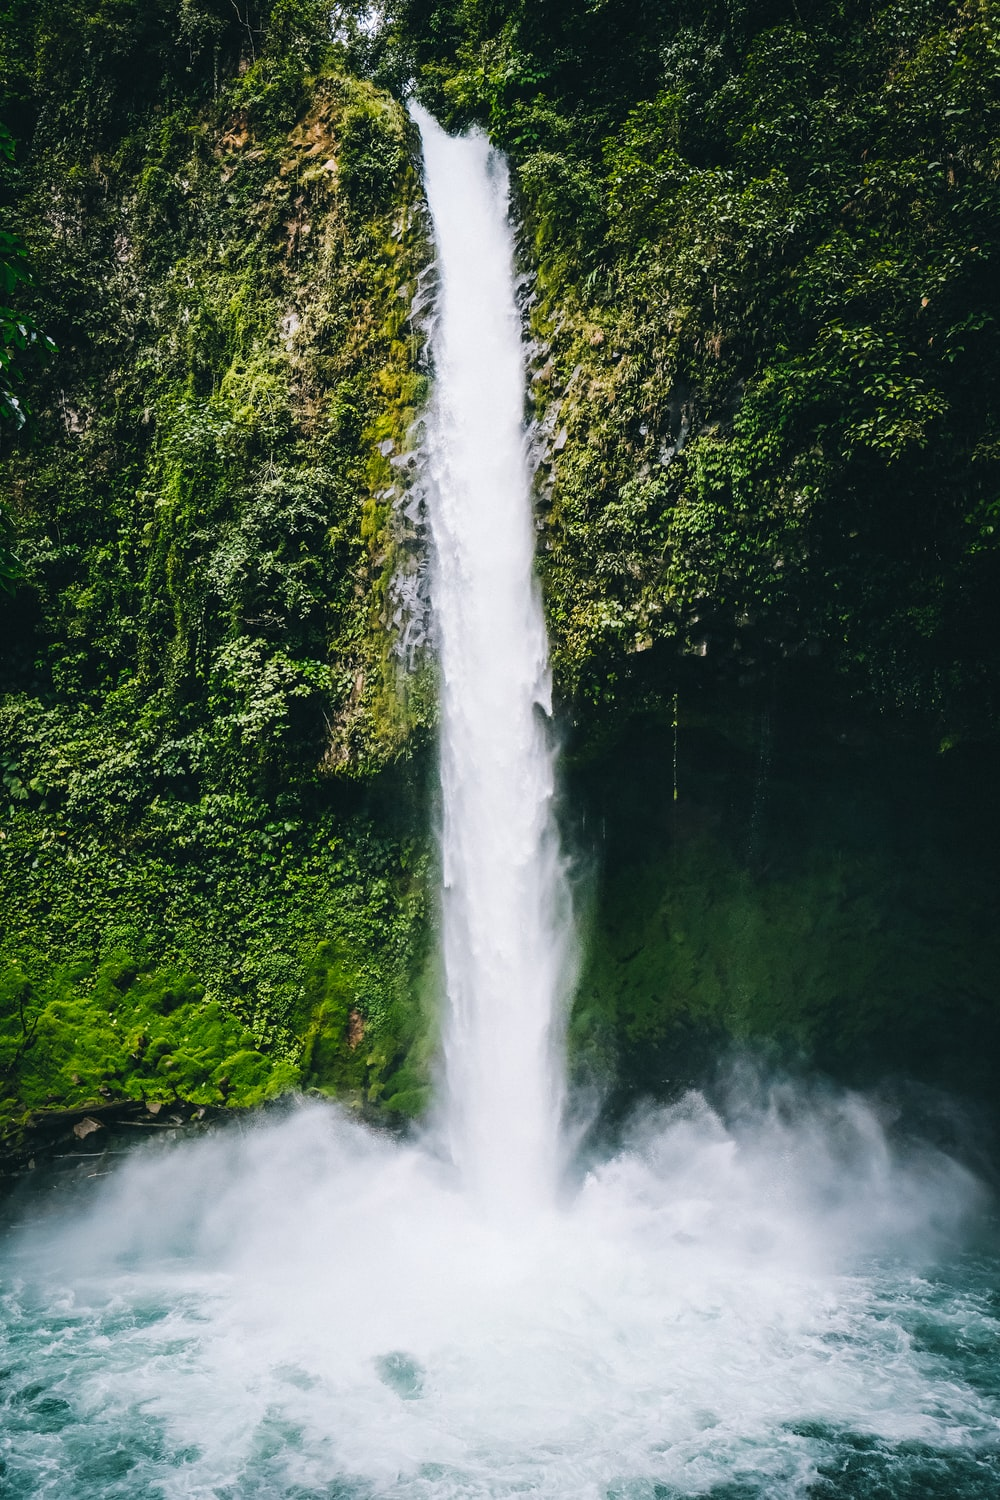 waterfalls in the middle of green trees